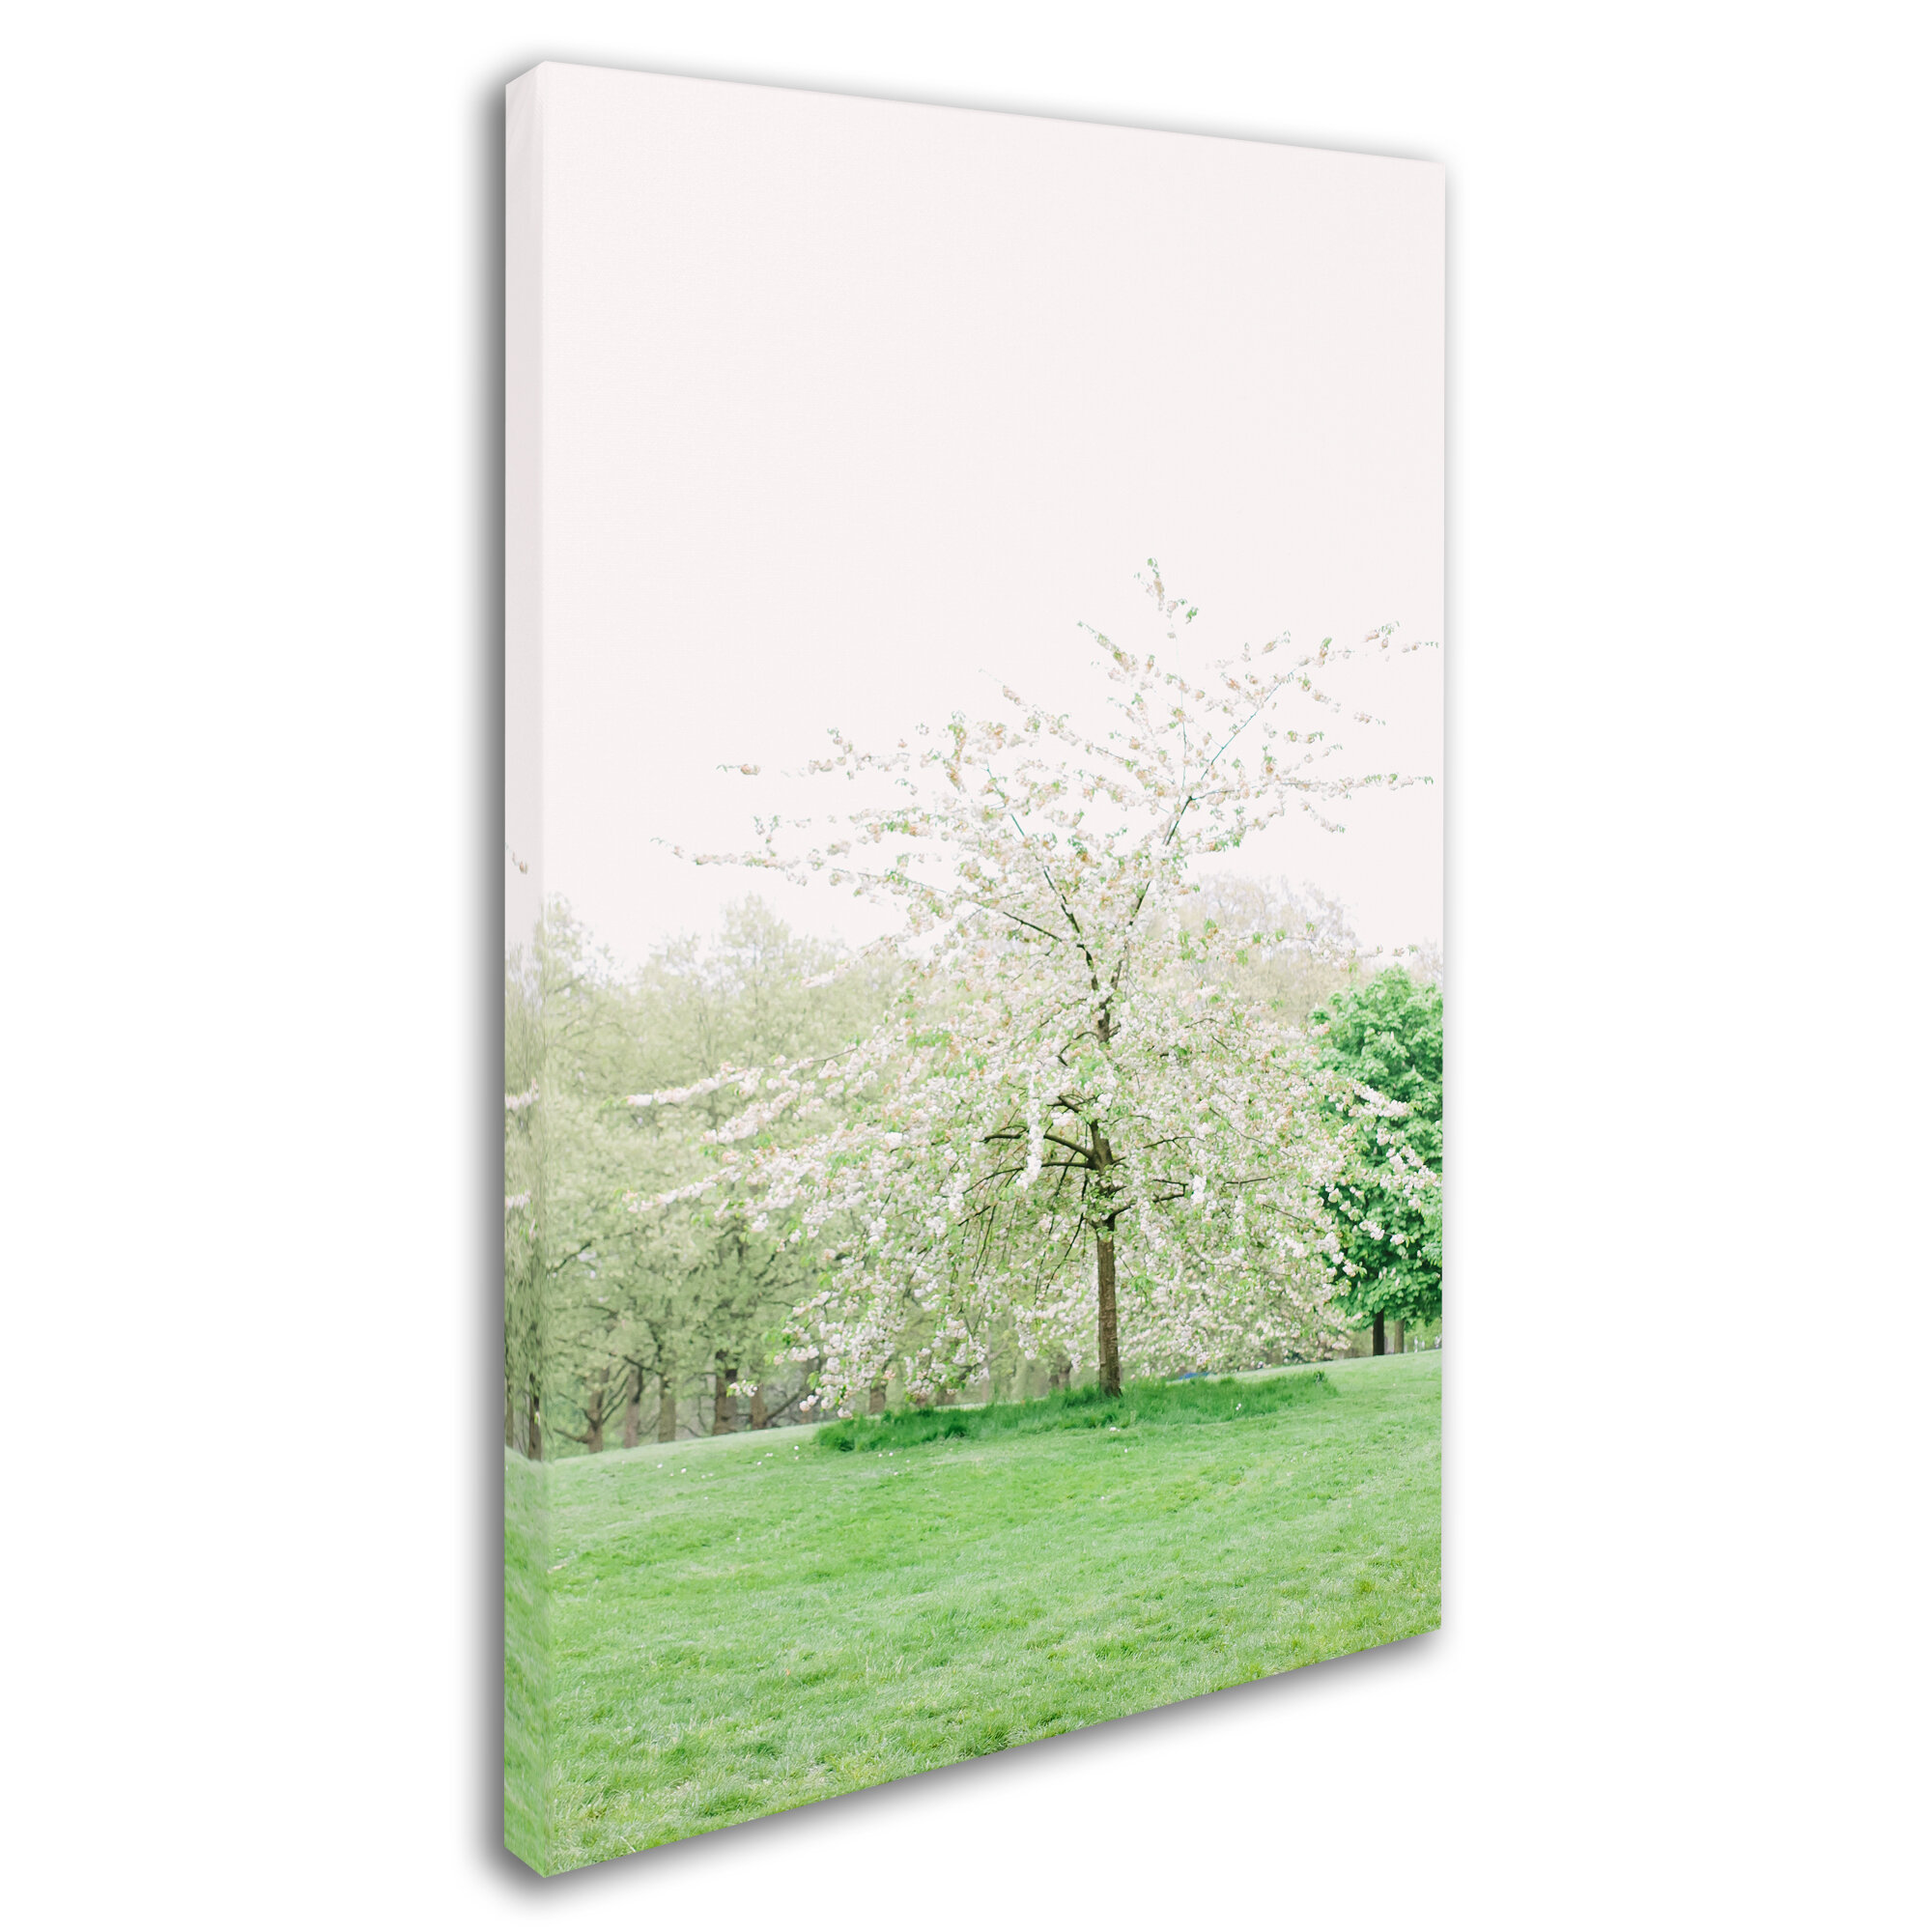 Trademark Art White Cherry Blossom Tree Photographic Print On Wrapped Canvas Wayfair